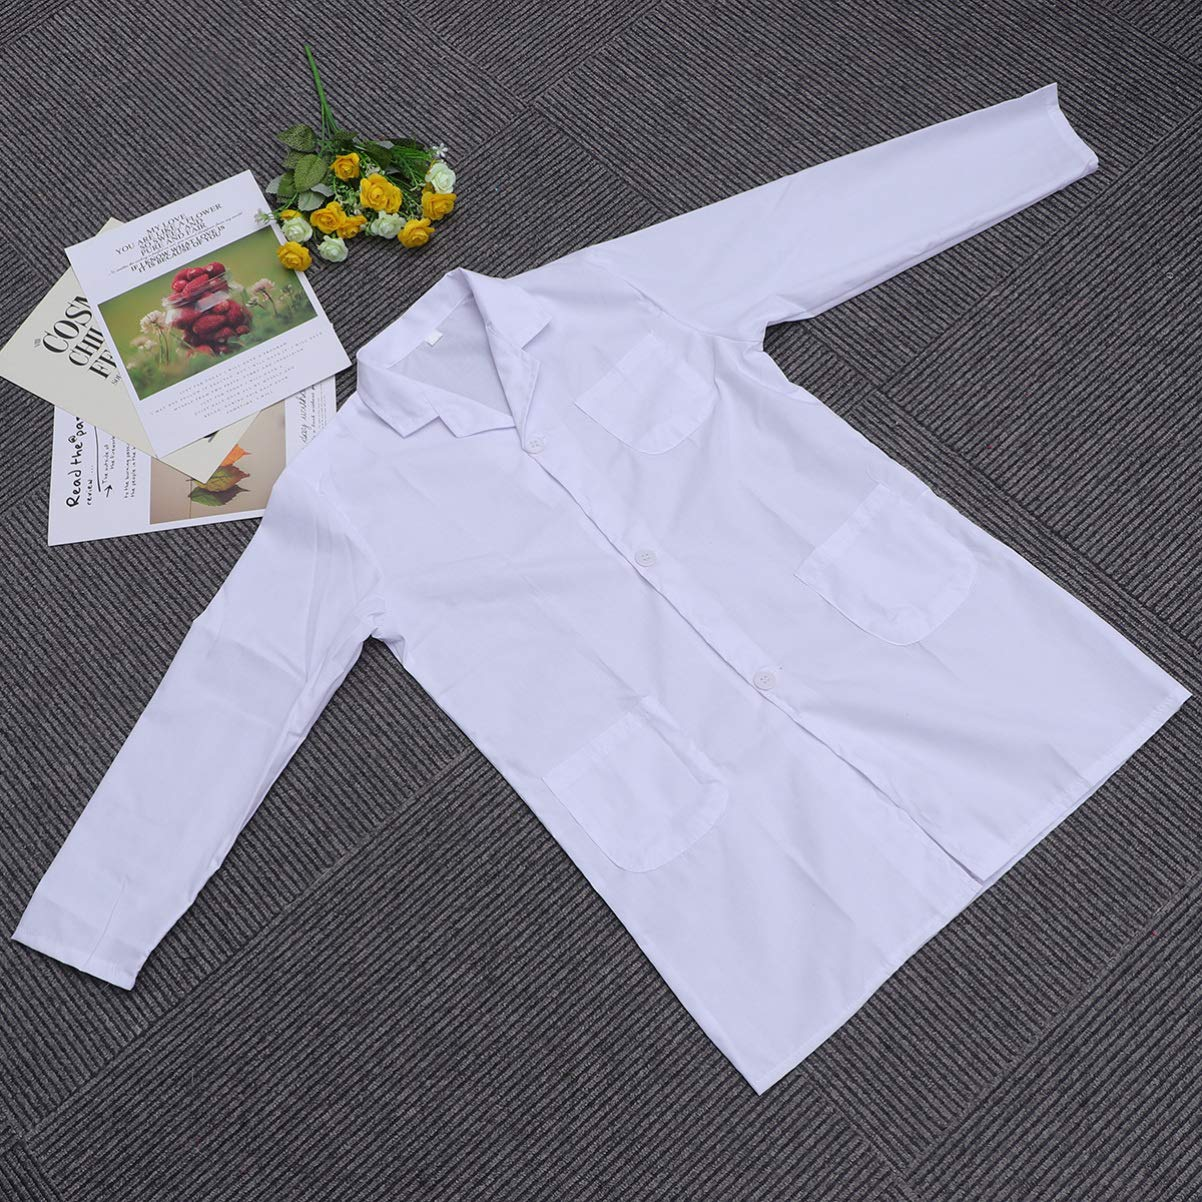 Small Size NUOBESTY Kids Lab Coat Unisex Doctor for Dress Up Costume